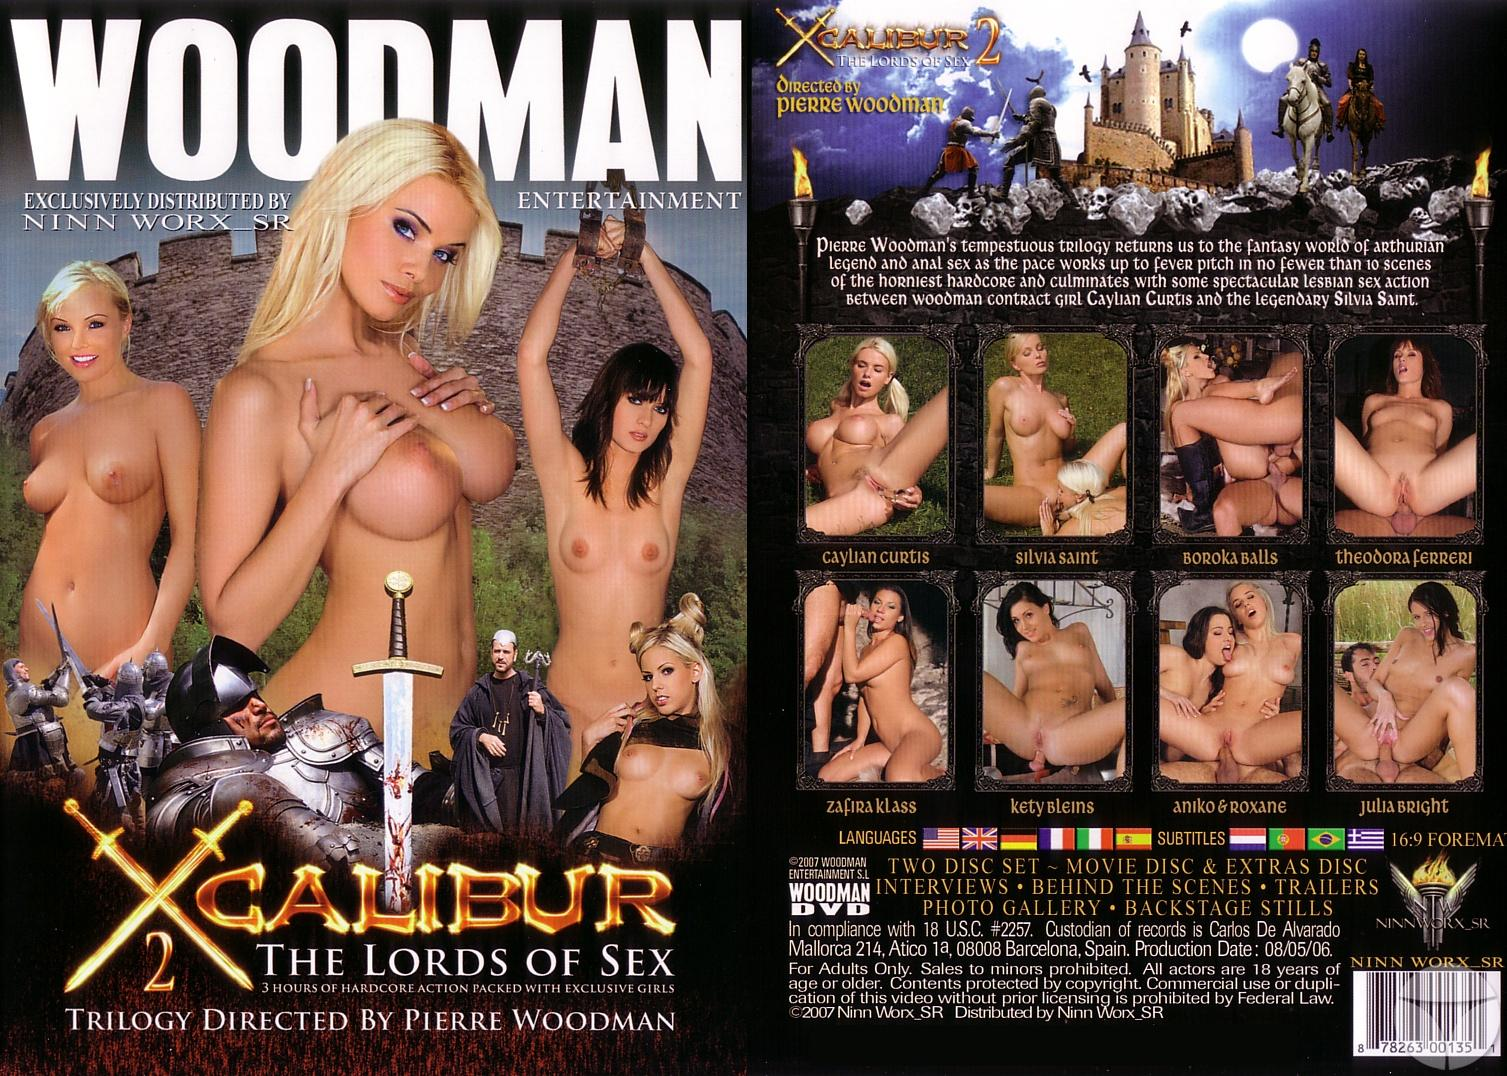 Xcalibur - The Lords of Sex 2006